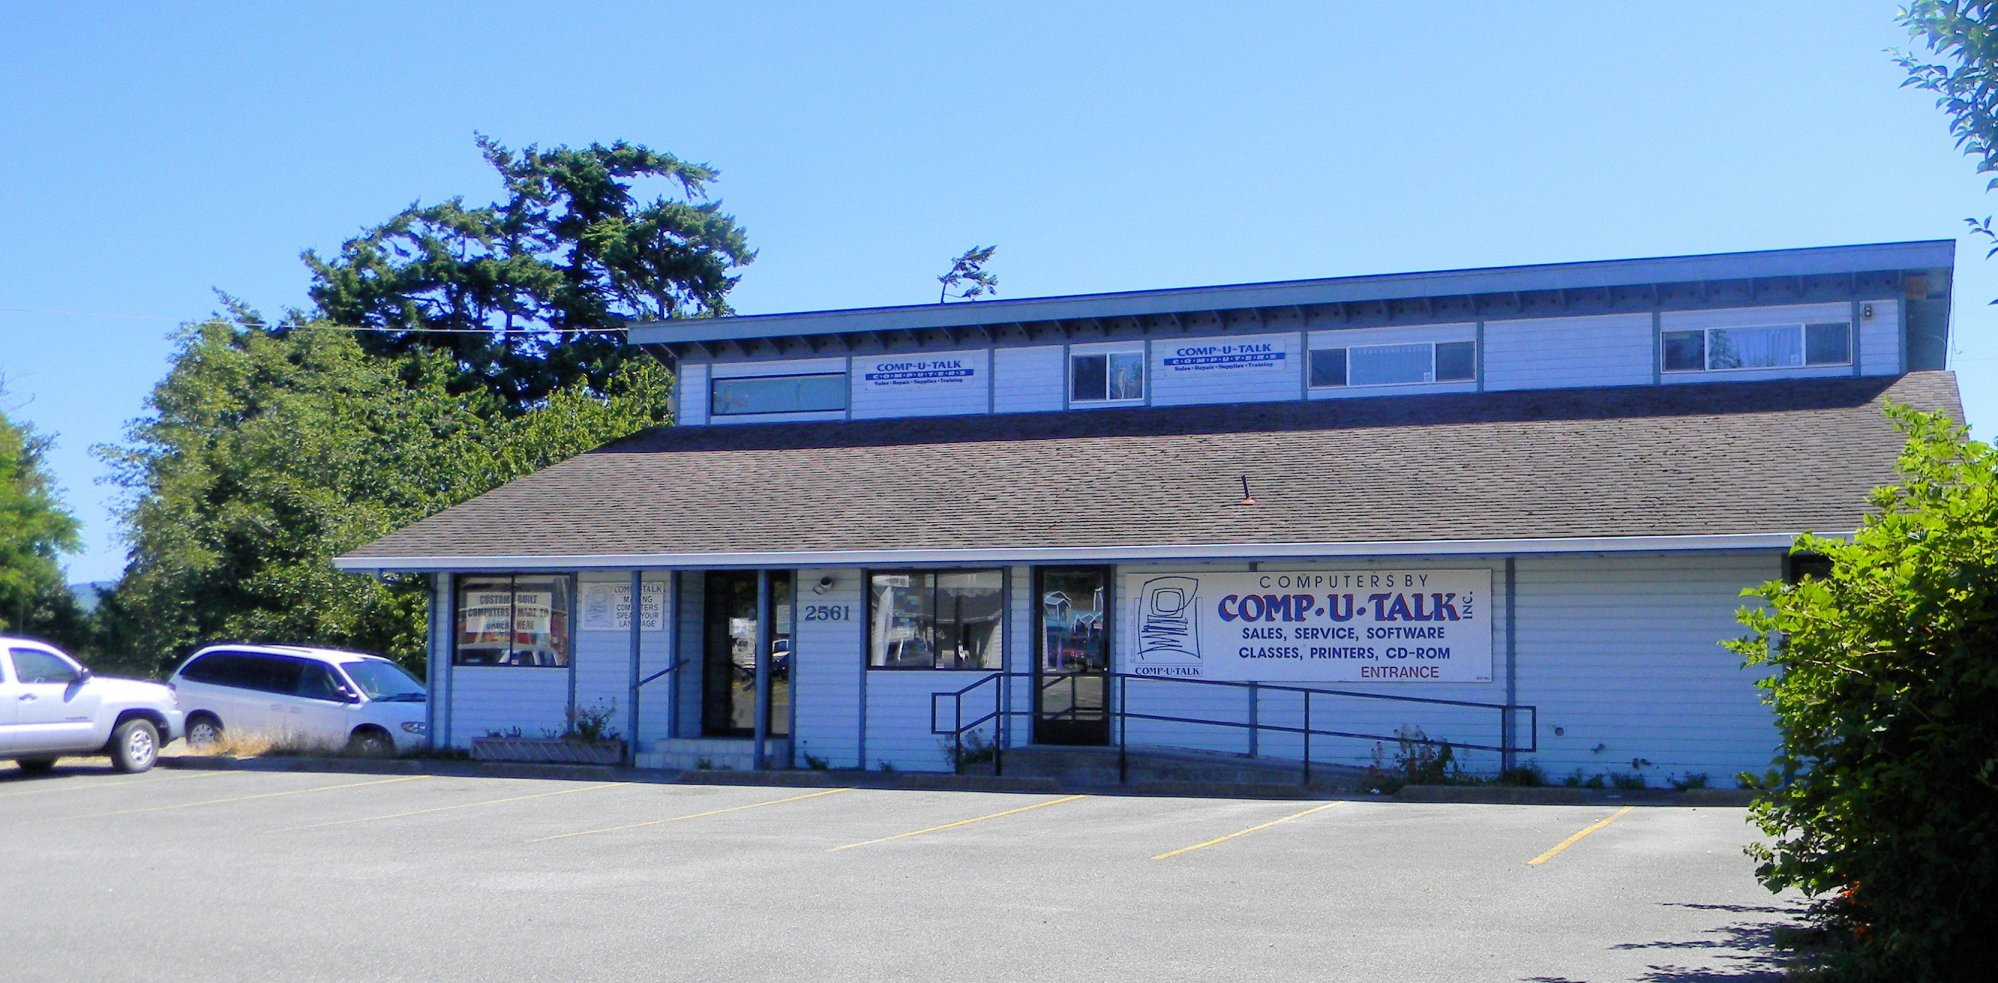 Comp-U-Talk in North Bend. A Real Building with Real People who Speak English.